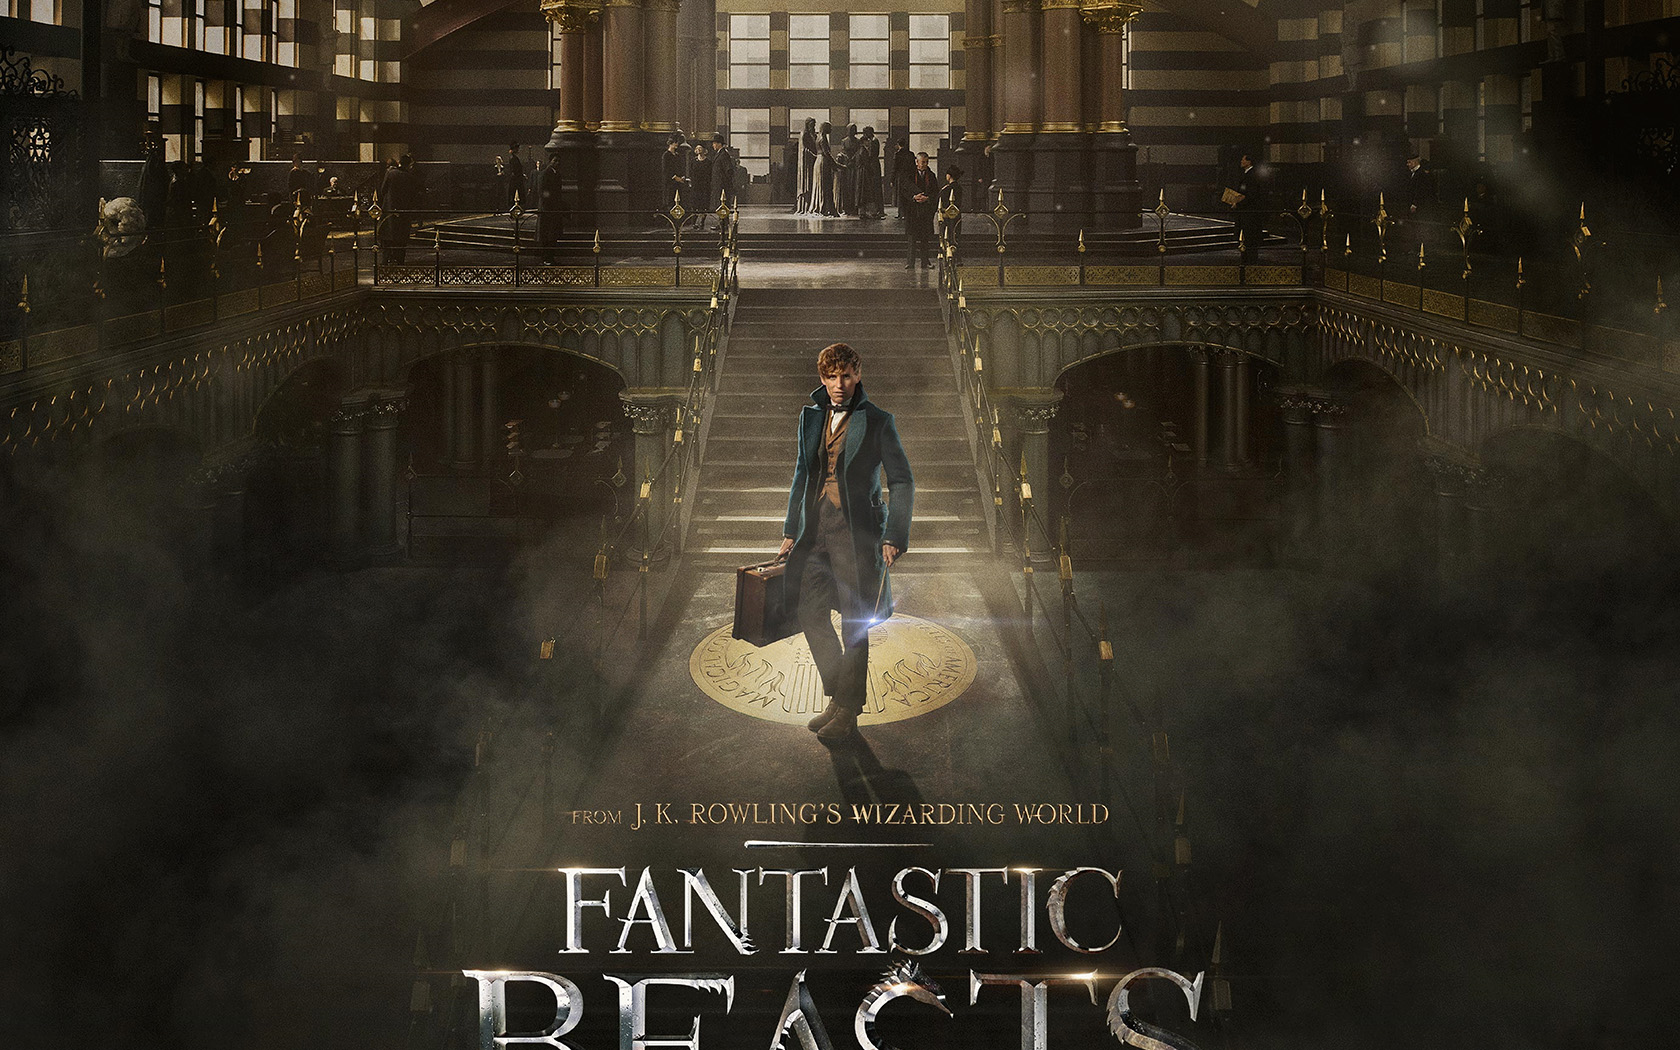 Fall Wallpaper For Iphone 7 Plus Av07 Fantastic Beasts And Where To Find Them Film